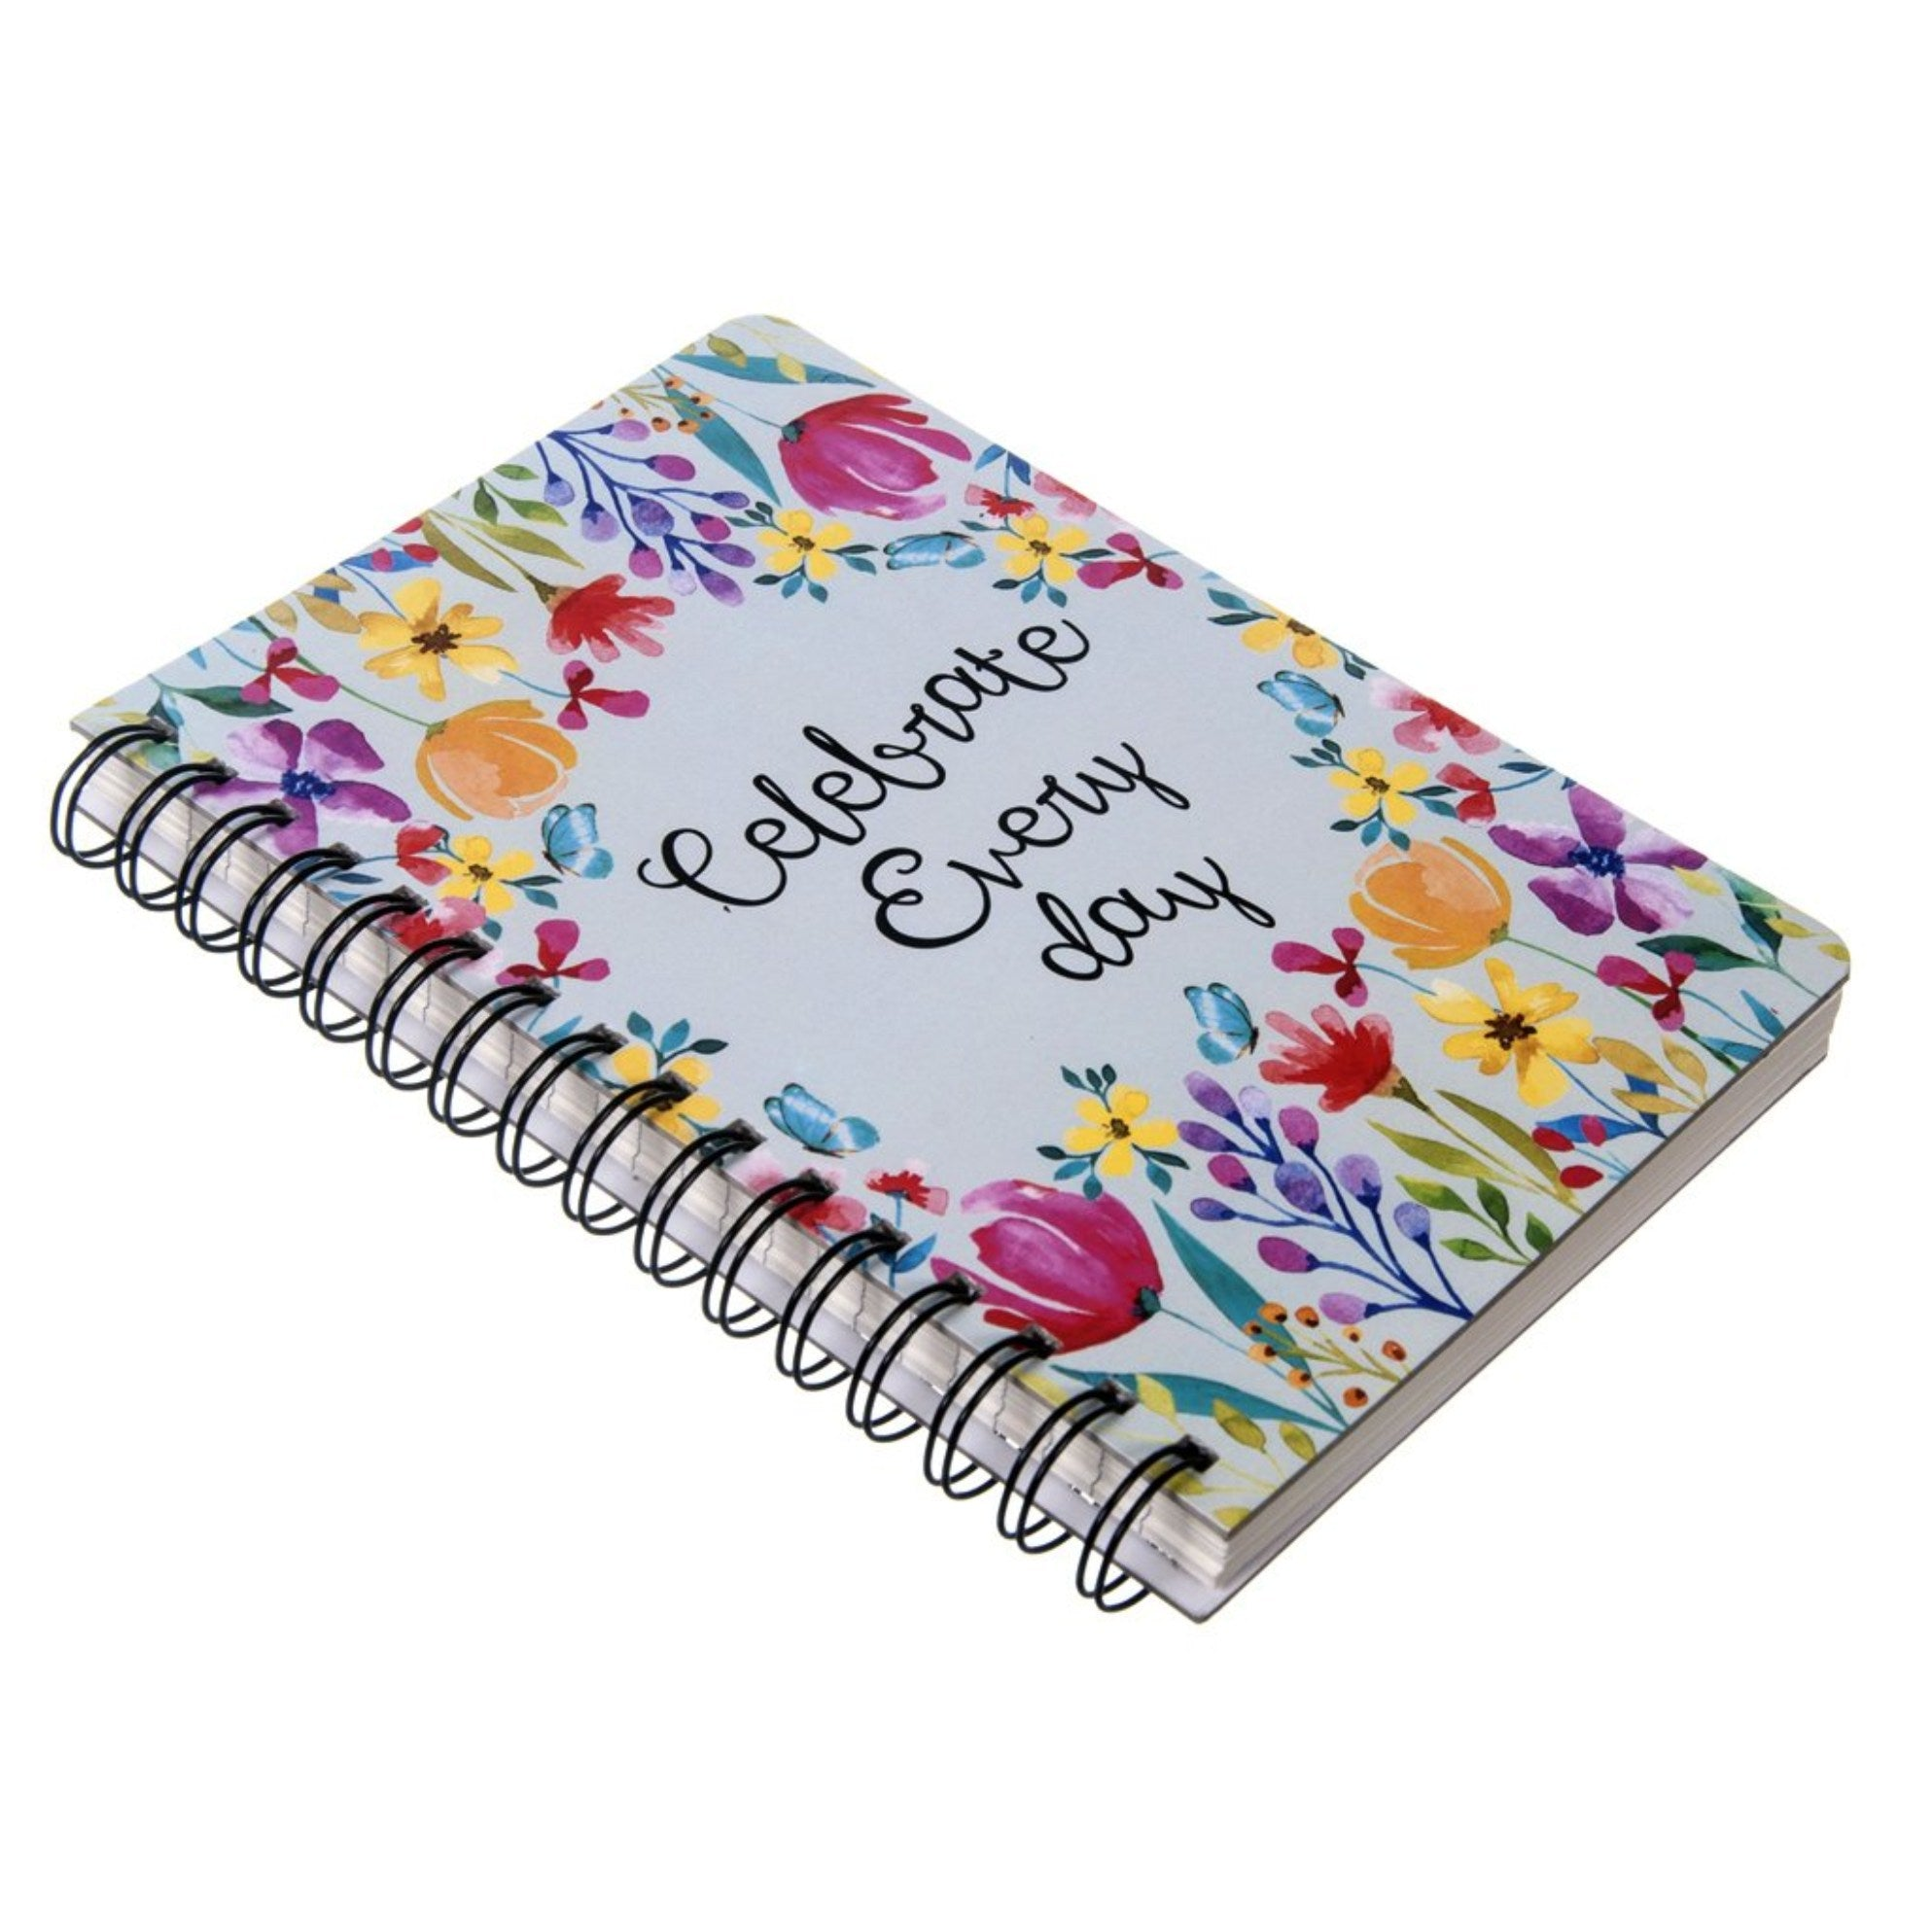 Gifts of Love Viva Notebook A5 - Celebrate Every Day